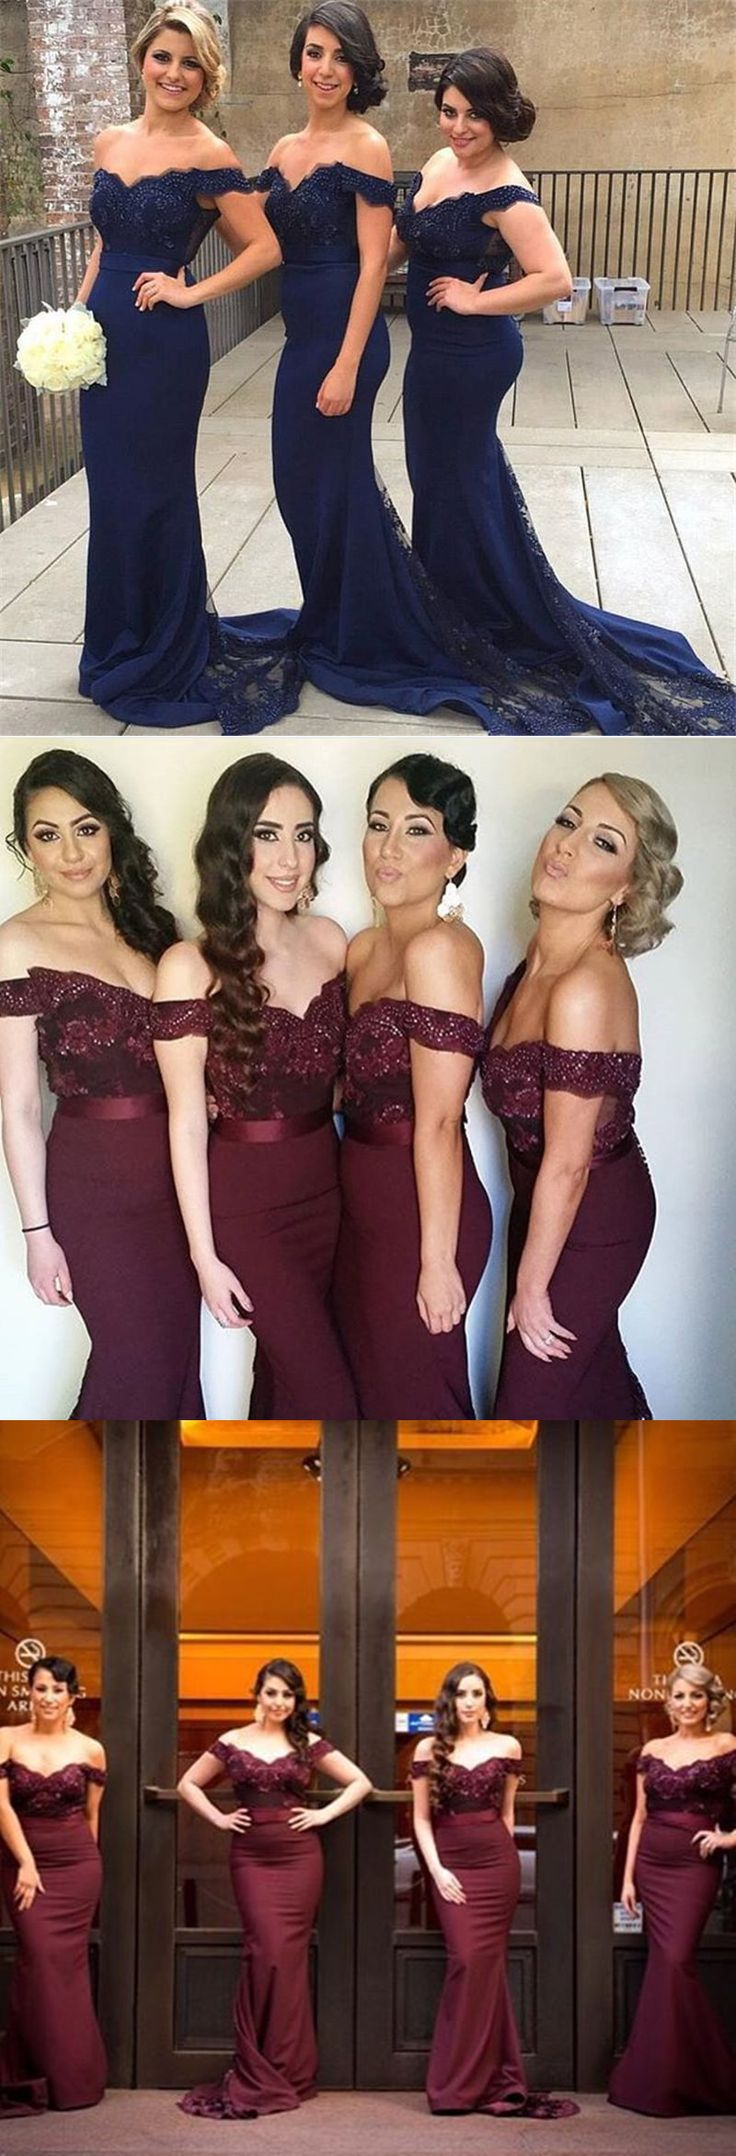 Best 25 navy lace bridesmaid dress ideas on pinterest navy navy blue bridesmaid dresses off shoulder lace beaded chiffon mermaid sash bodice wedding party gowns with sweep train ombrellifo Images